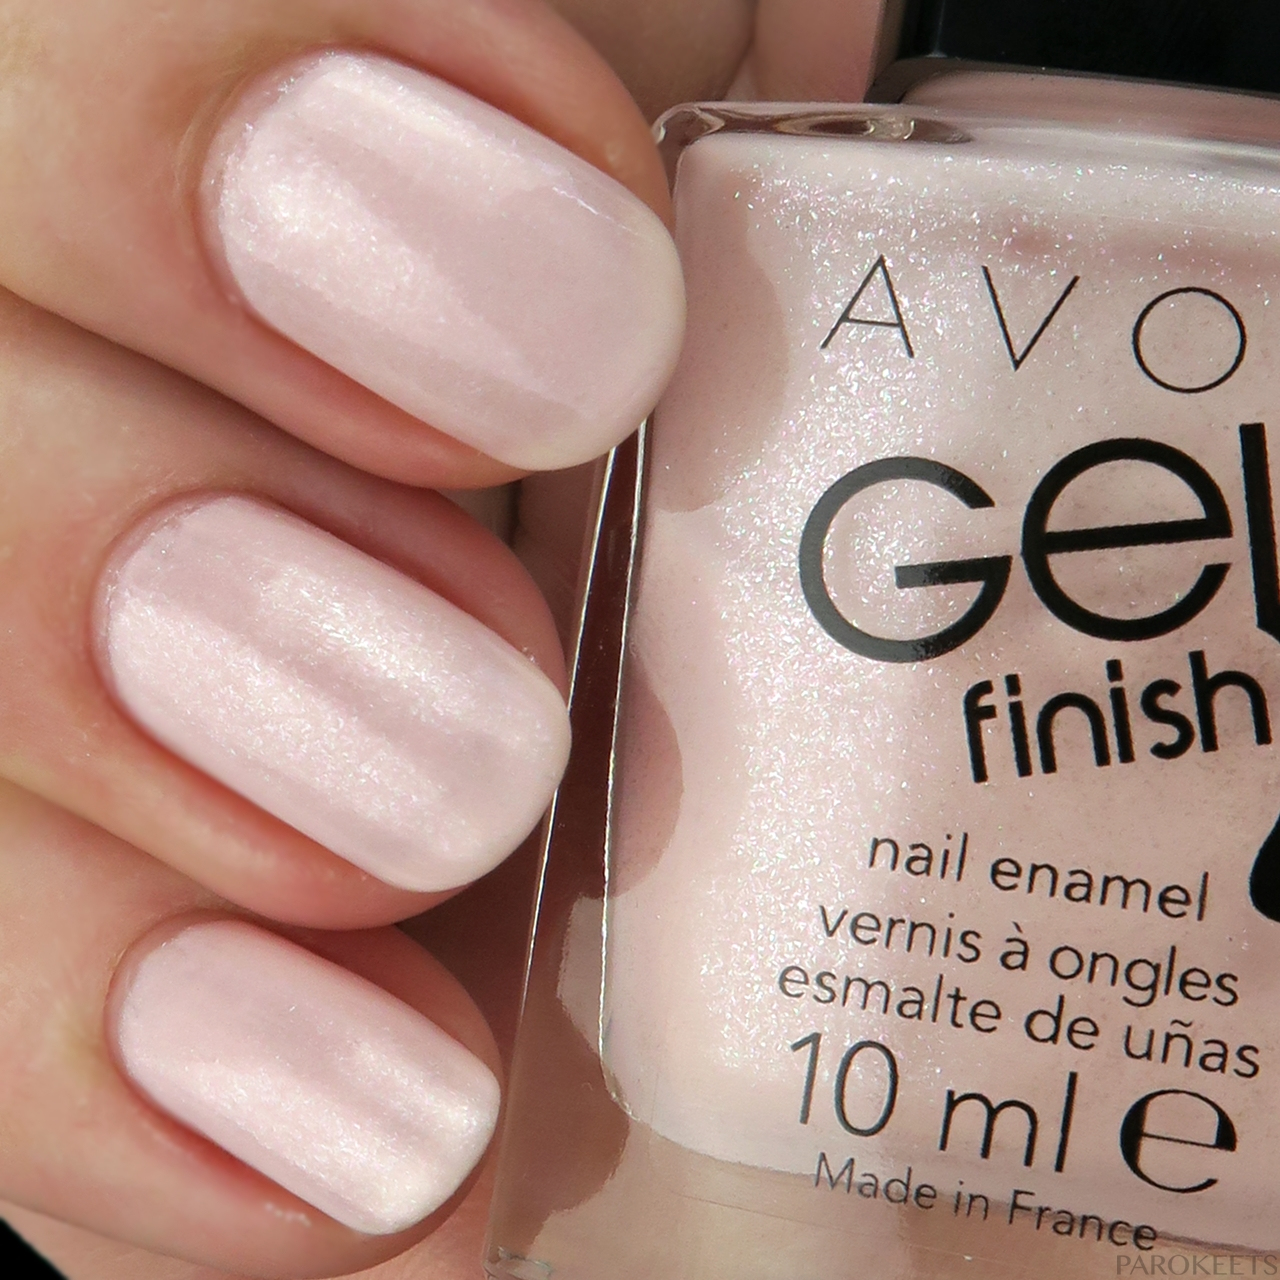 Avon Gel finish nail polishes (new 2016) | Parokeets